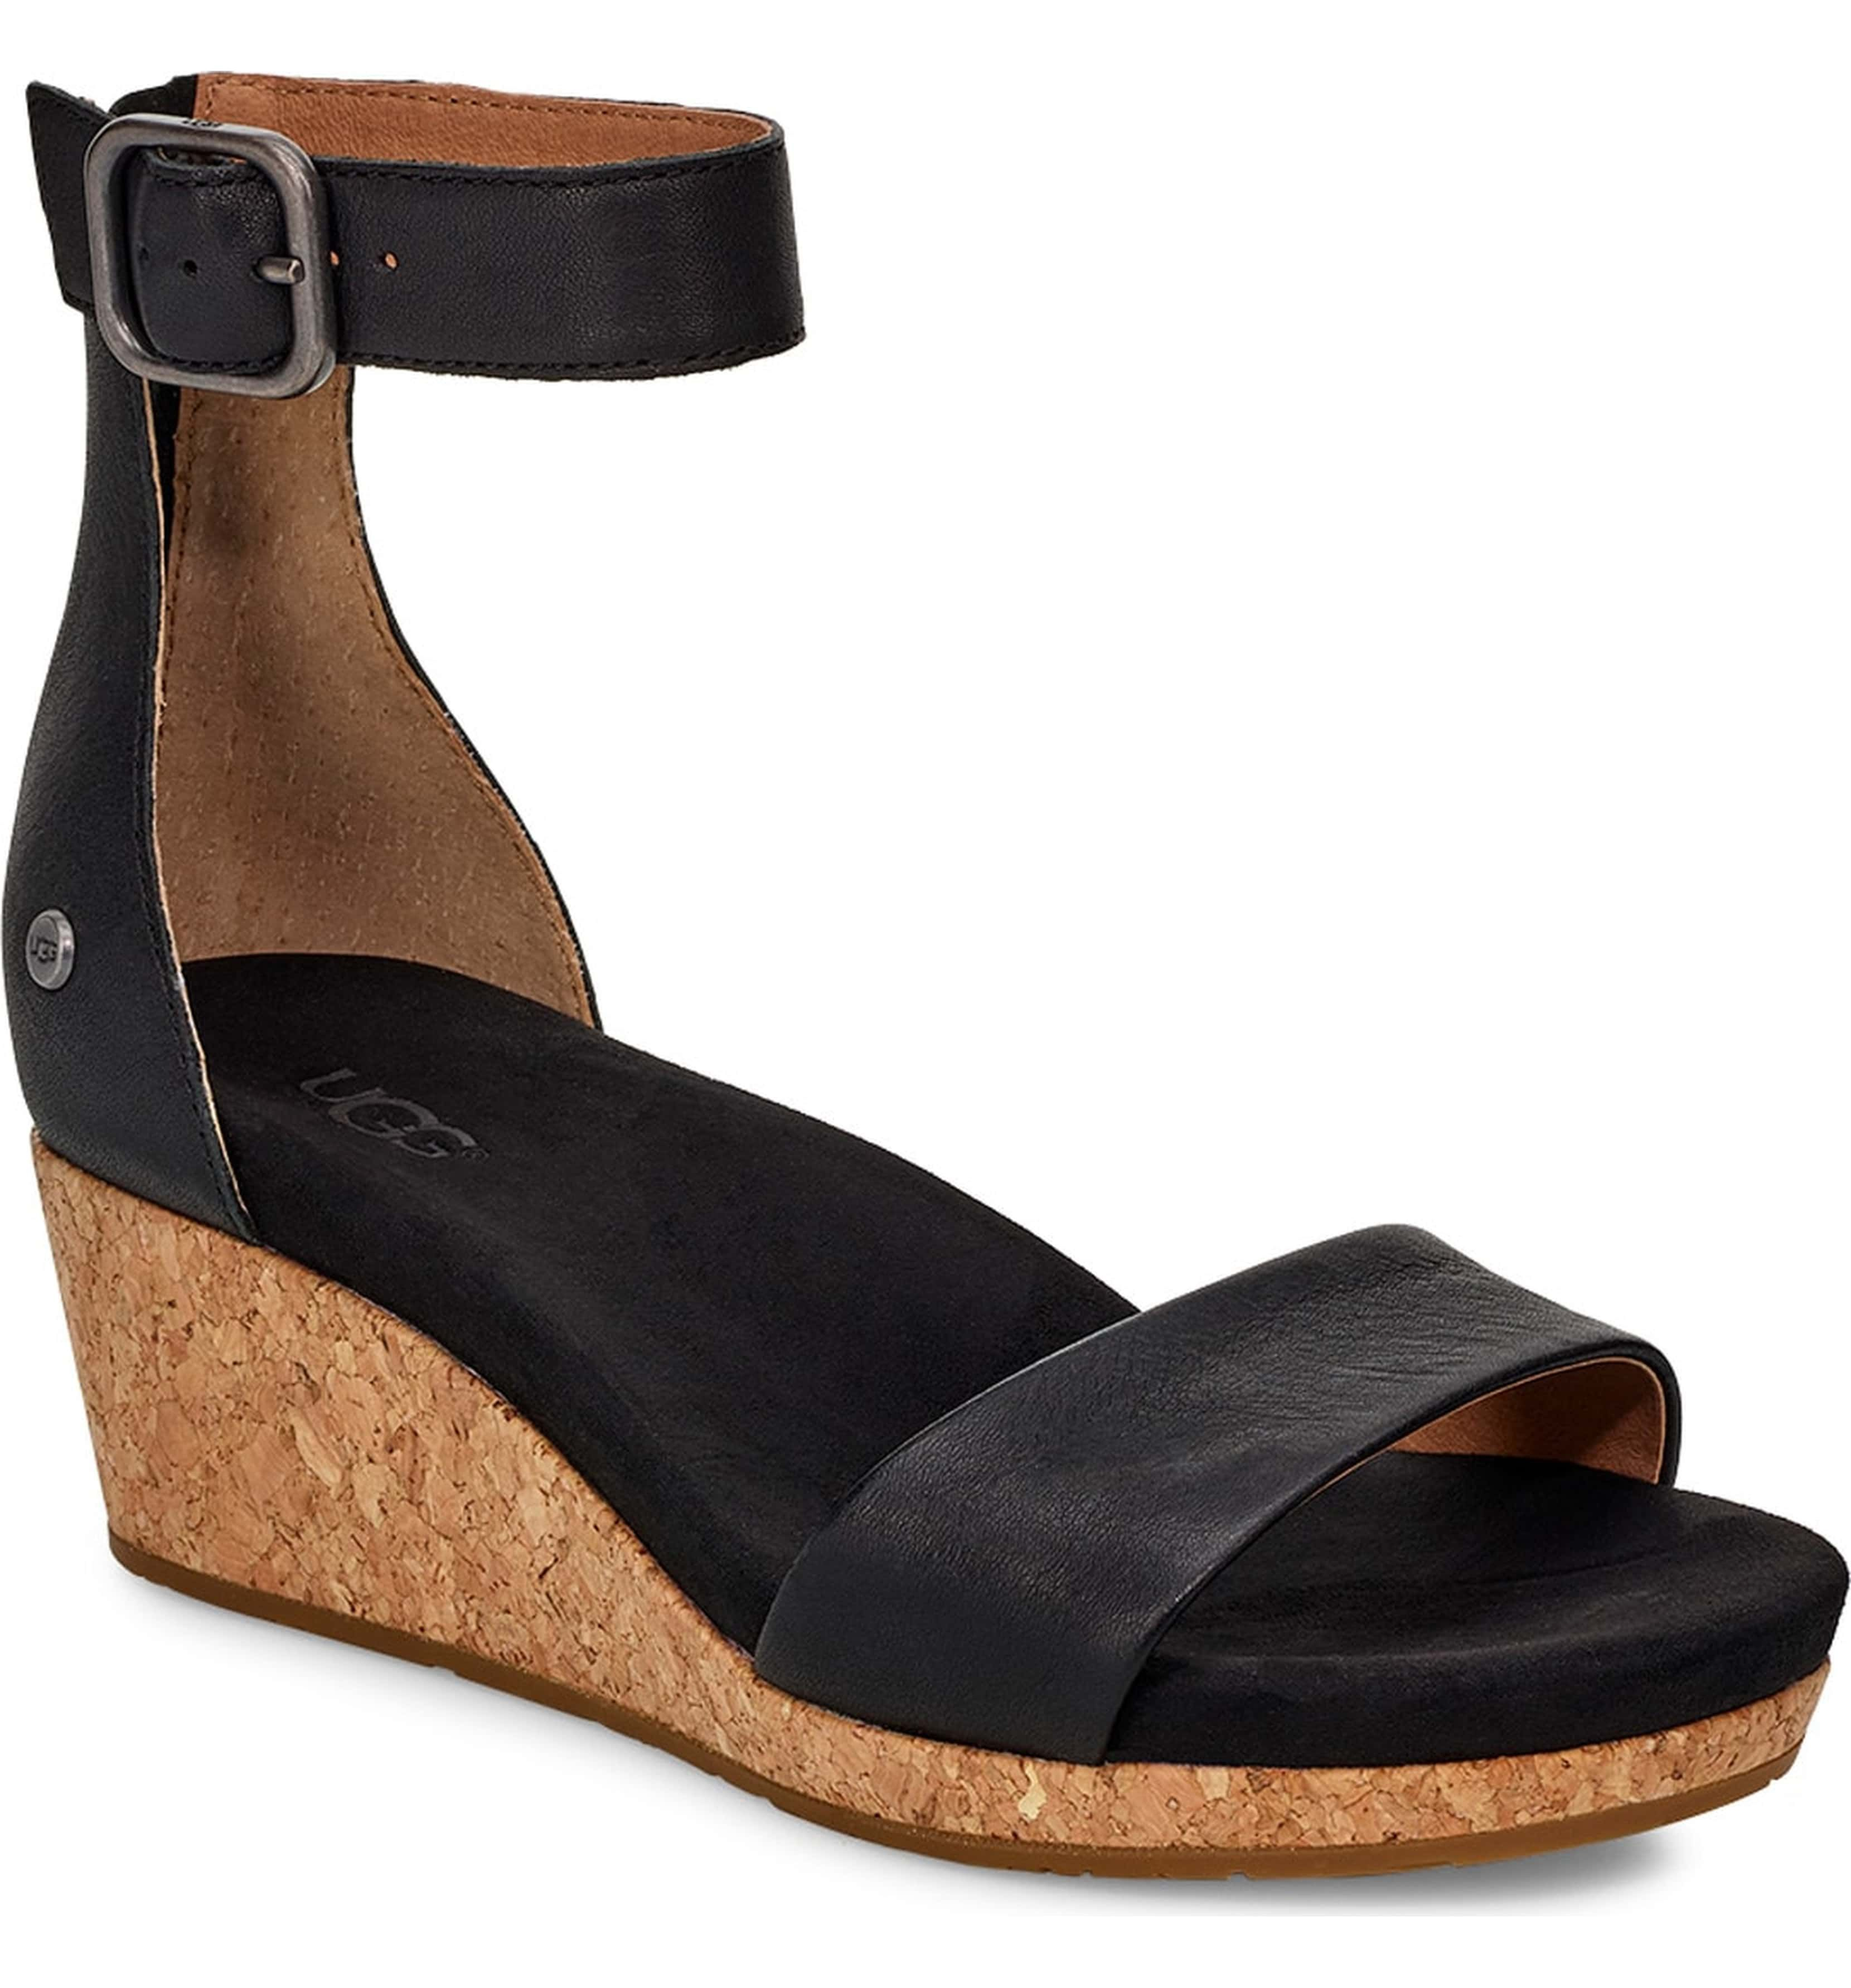 27395d2461a Zoe II Wedge Sandal, Main, color, BLACK LEATHER | Shoes in 2019 ...